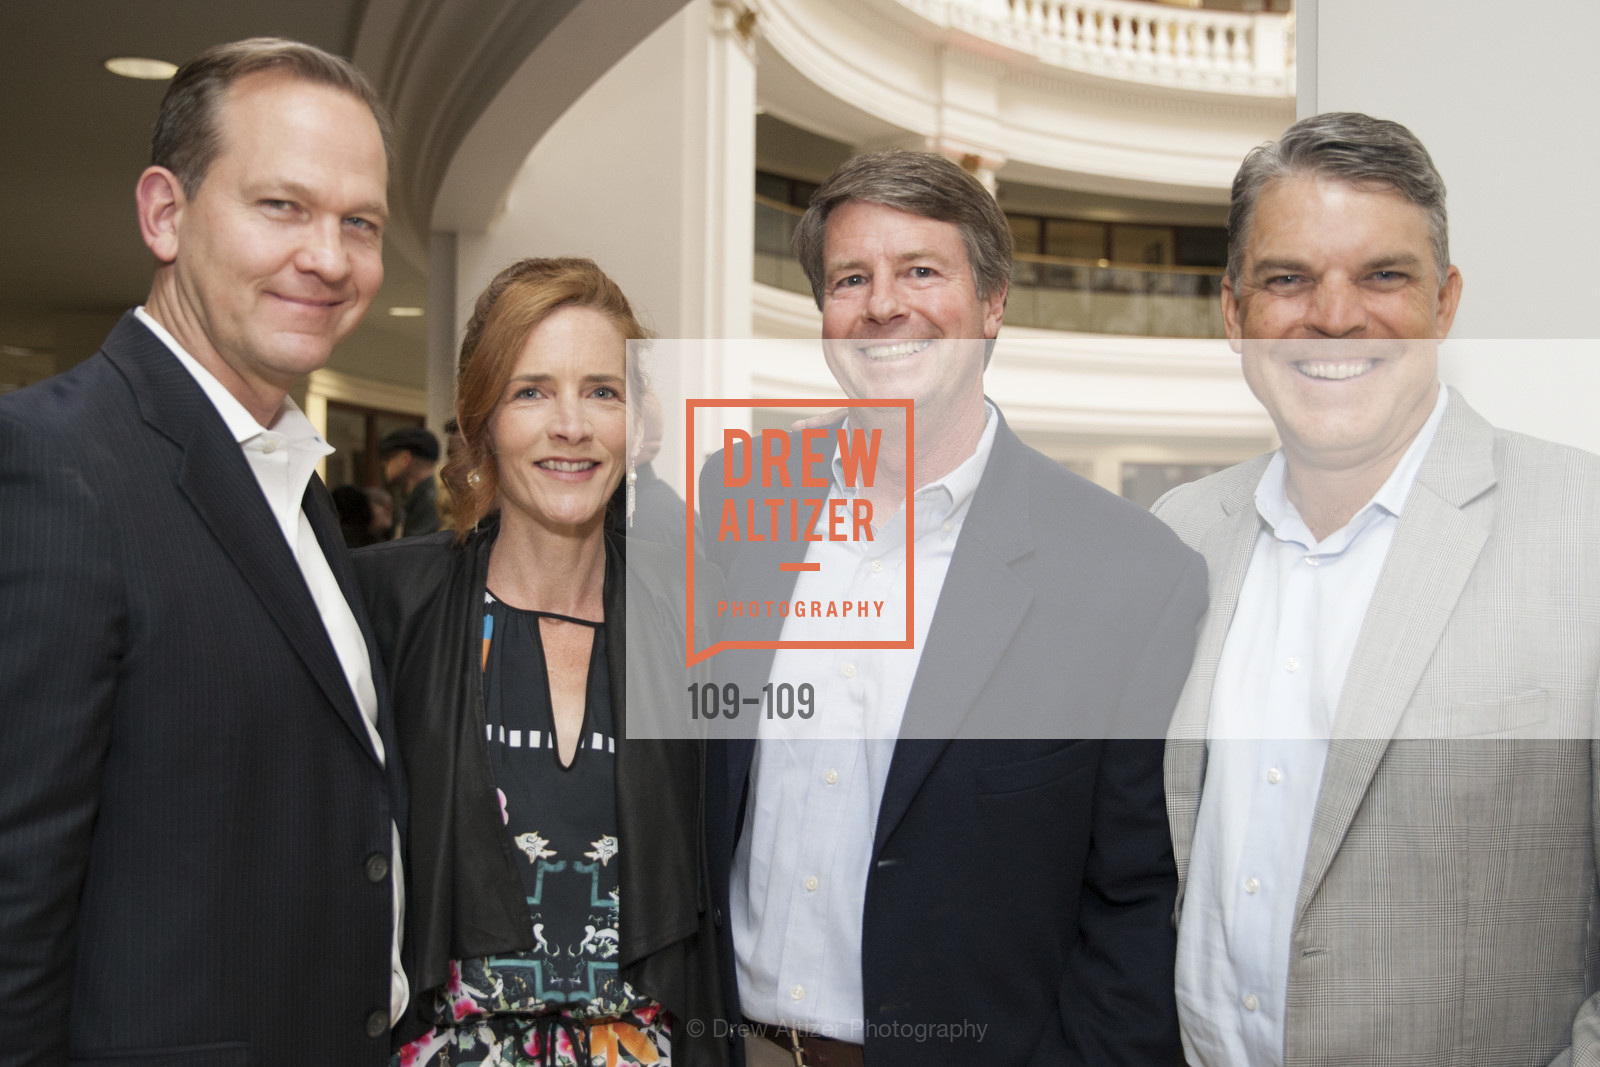 Matt Hofherr, Teri Steele, Bob Hoover, Tom Melohn, PANGAEA GLOBAL HEALTH Leadership Dinner at Rotunda in Oakland, The Rotunda. Oakland, May 11th, 2015,Drew Altizer, Drew Altizer Photography, full-service agency, private events, San Francisco photographer, photographer california